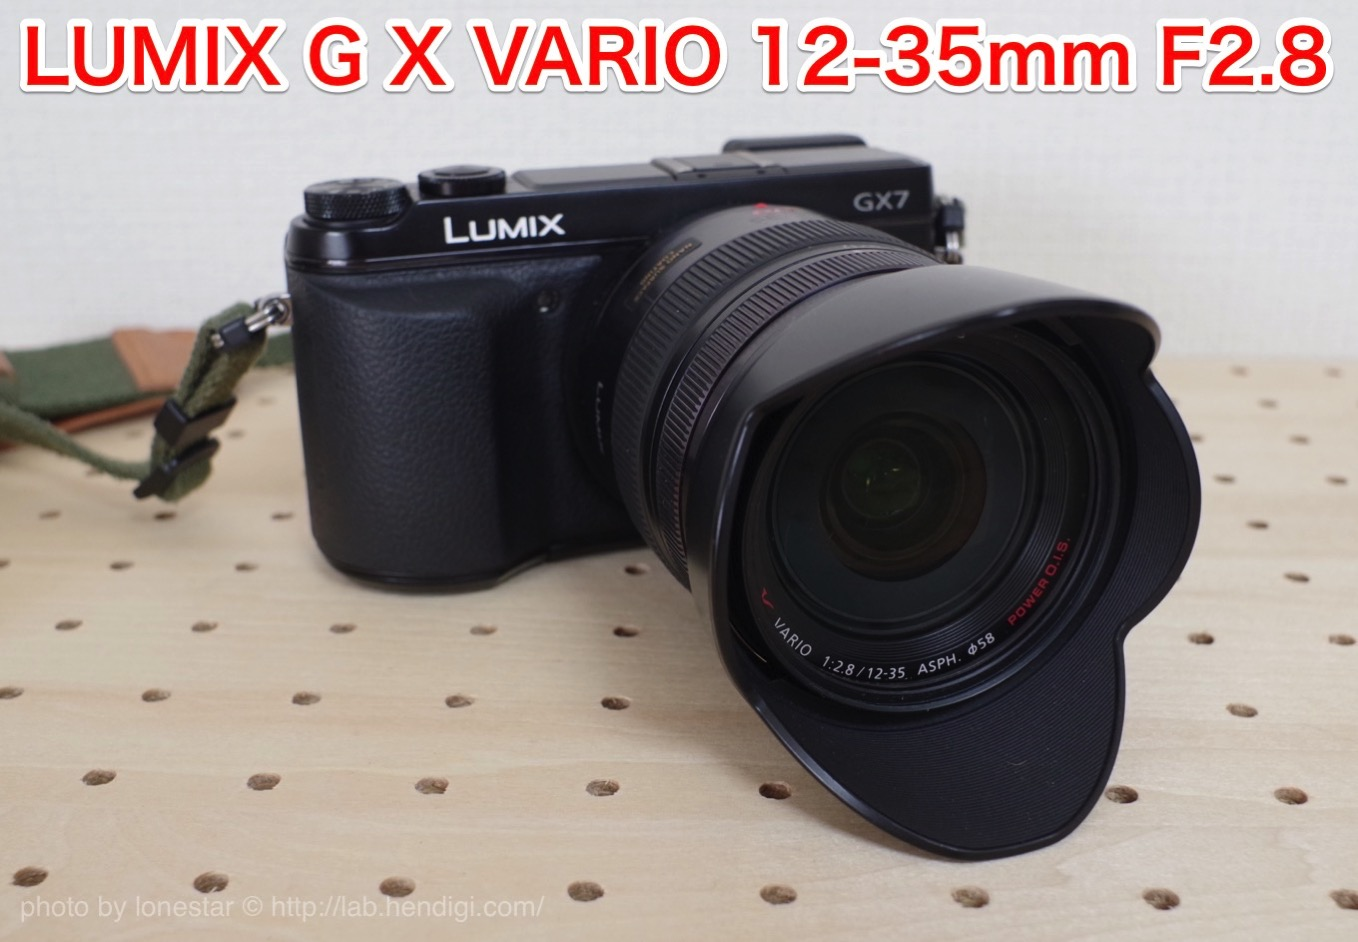 LUMIX G X VARIO 12-35mm F2.8